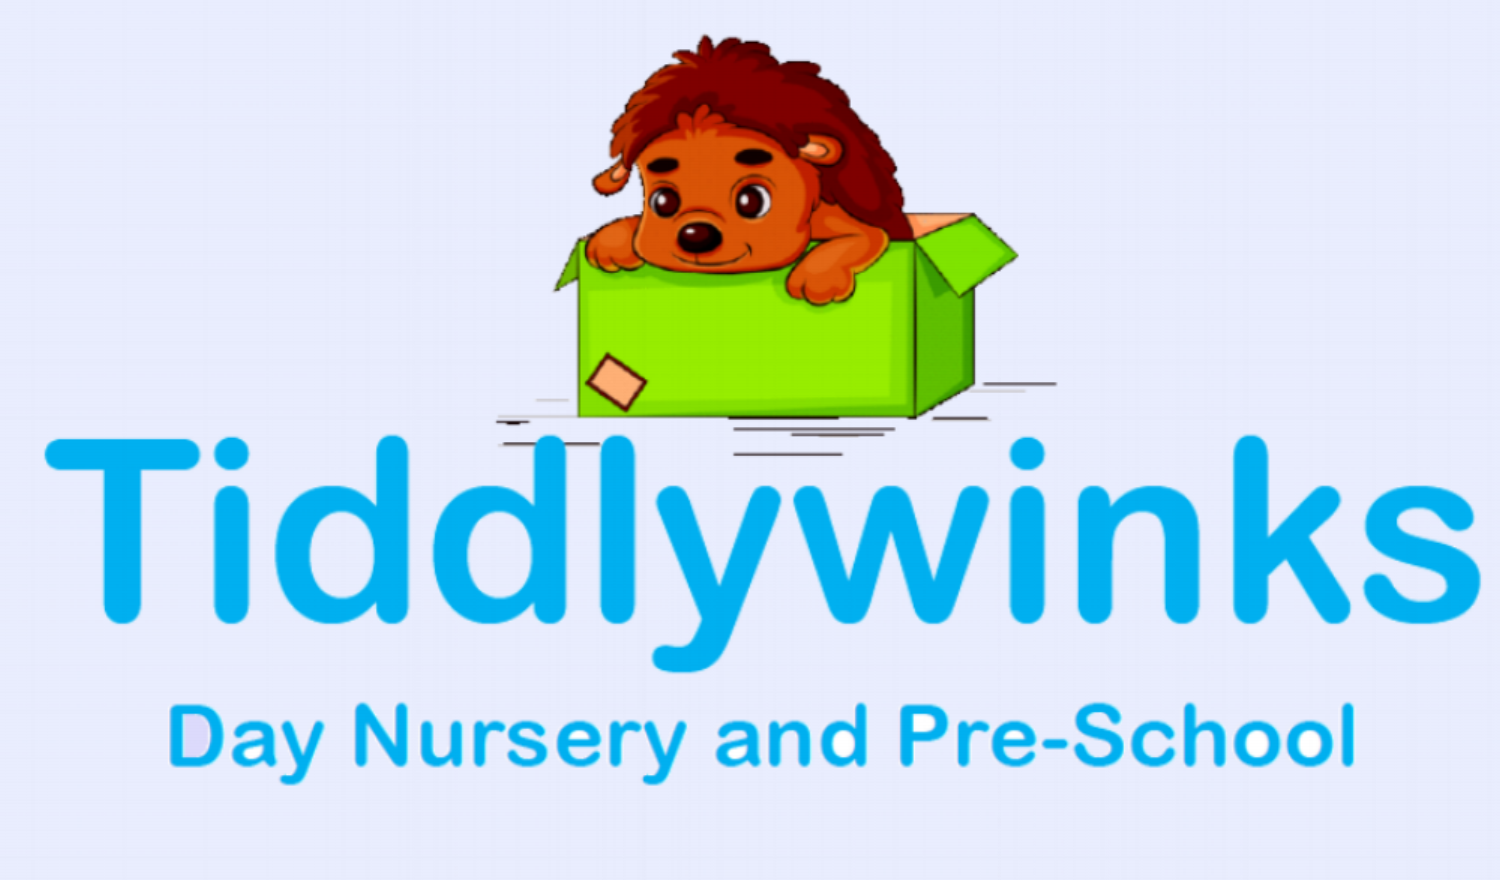 Tiddlywinks Day Nursery